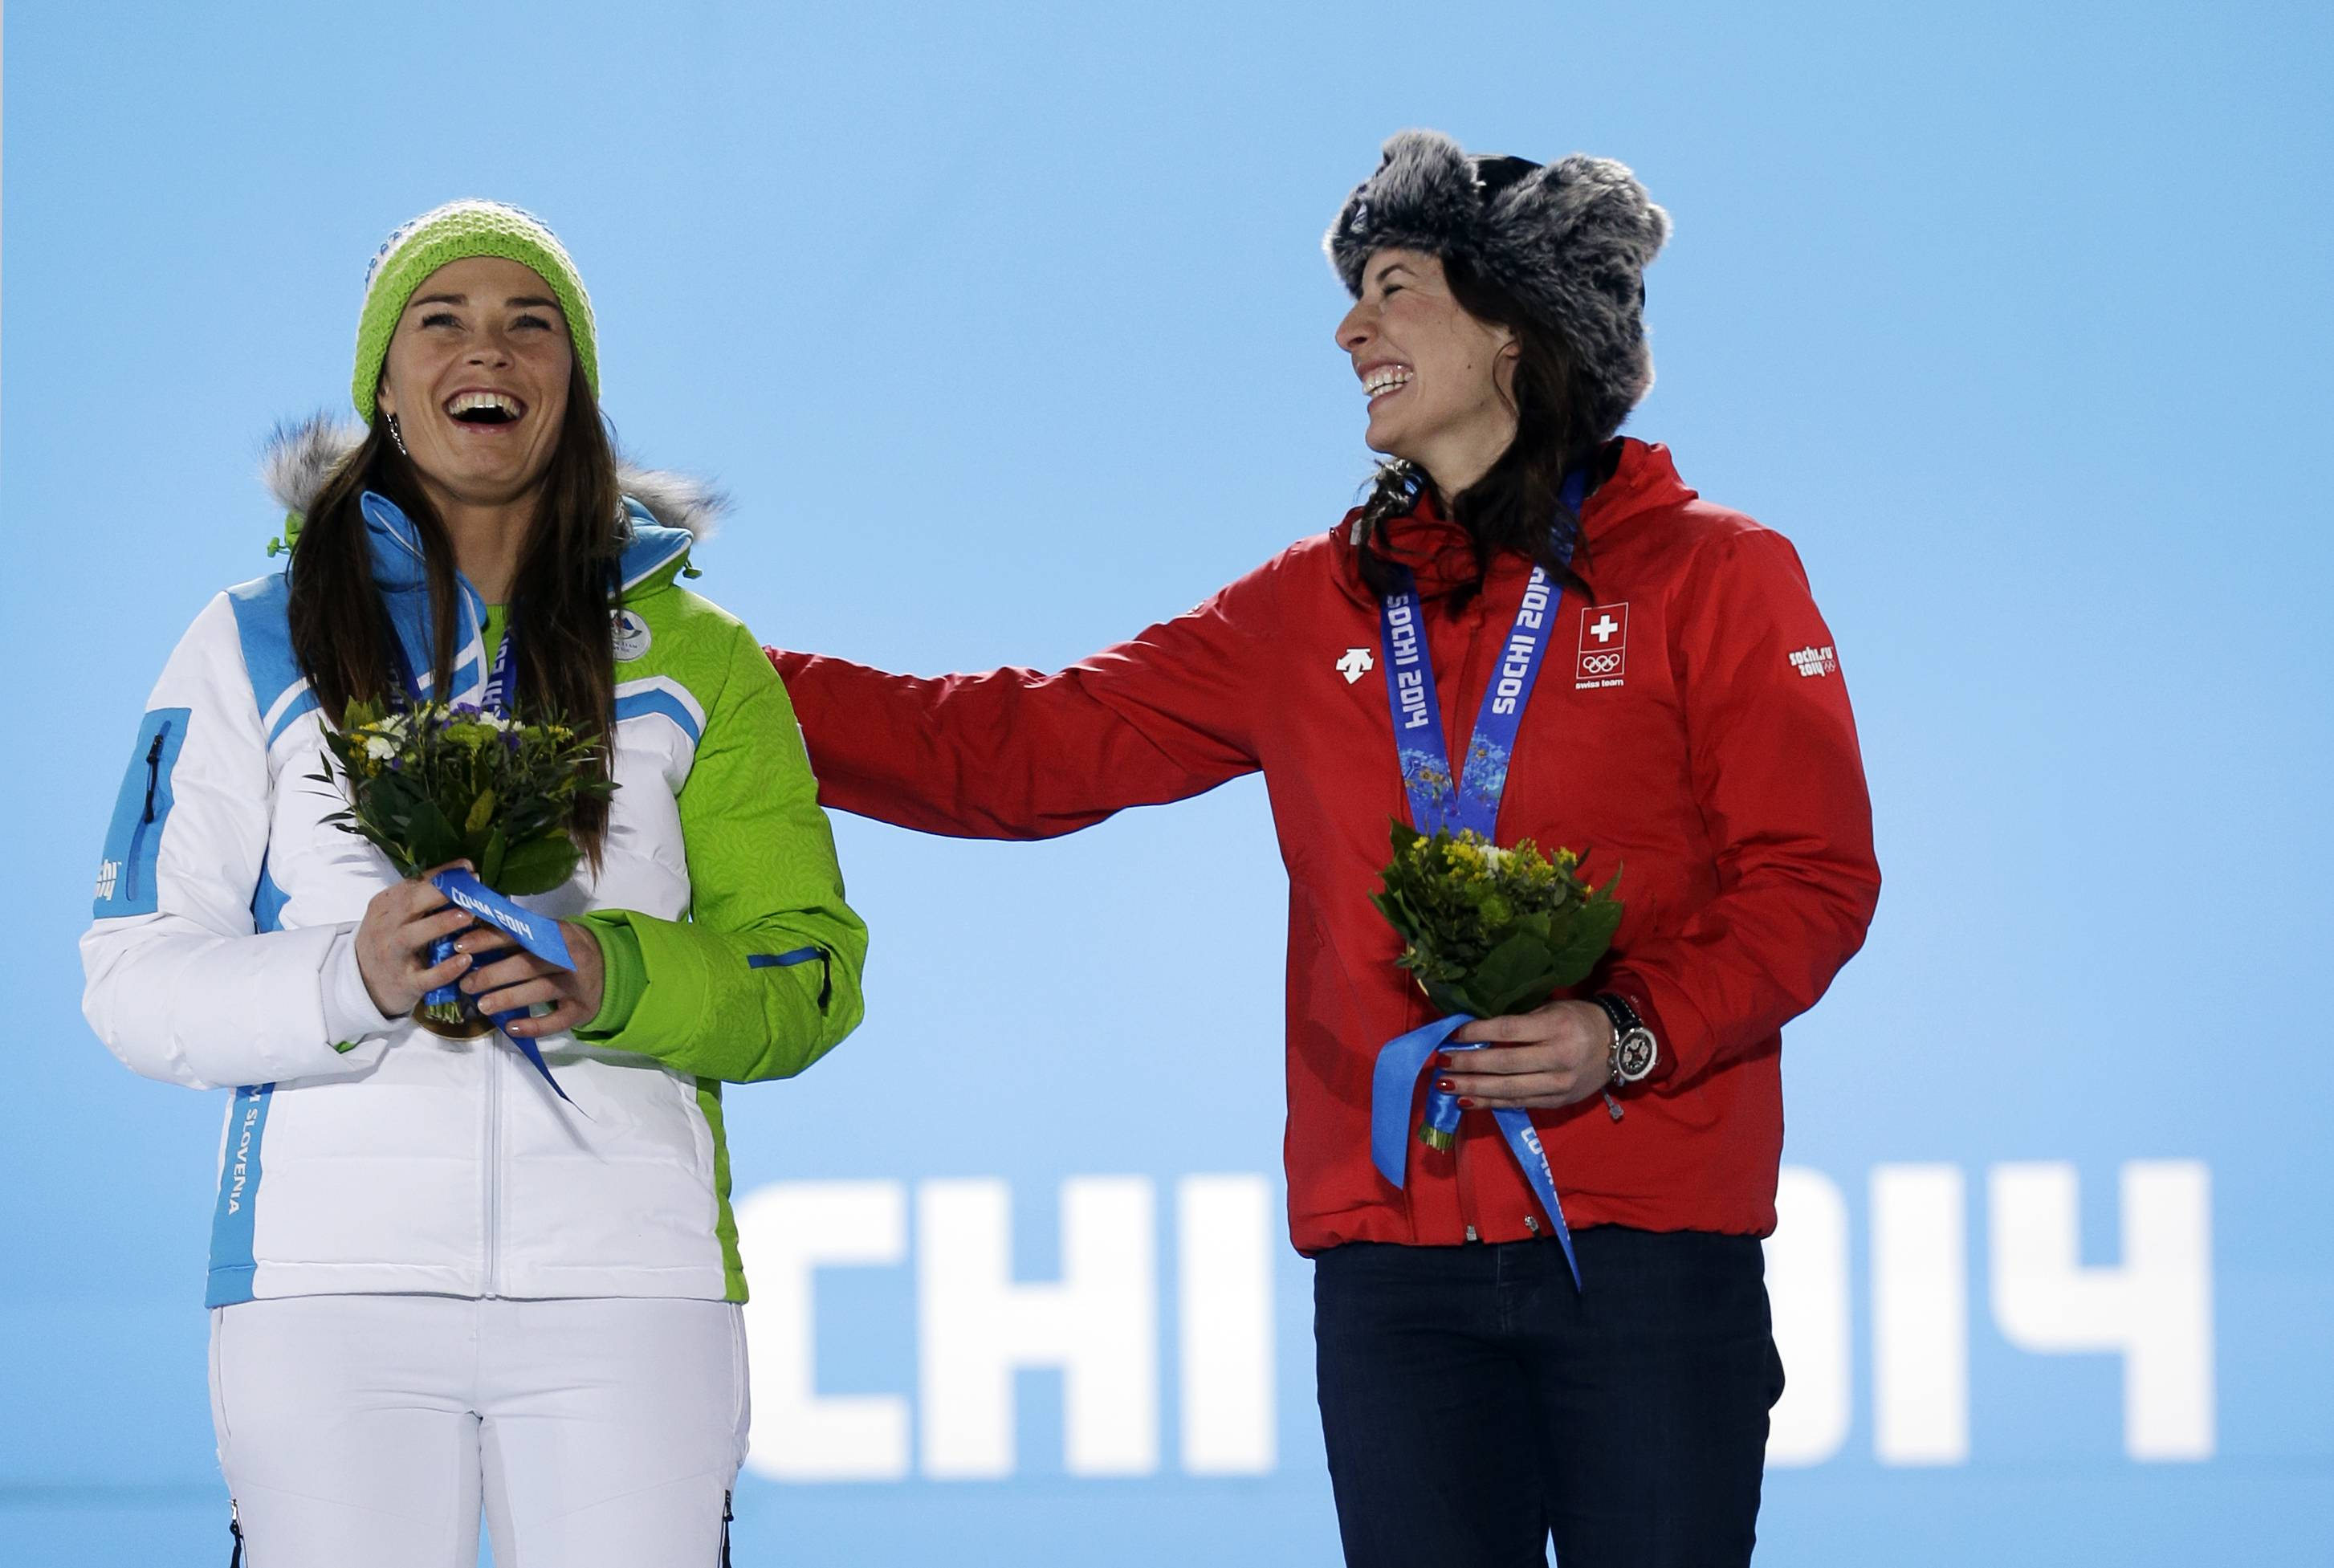 Dominique Gisin of Switzerland, right, smiles with Tina Maze of Slovenia, who tied for the gold medal in the women's downhill during their medals ceremony.